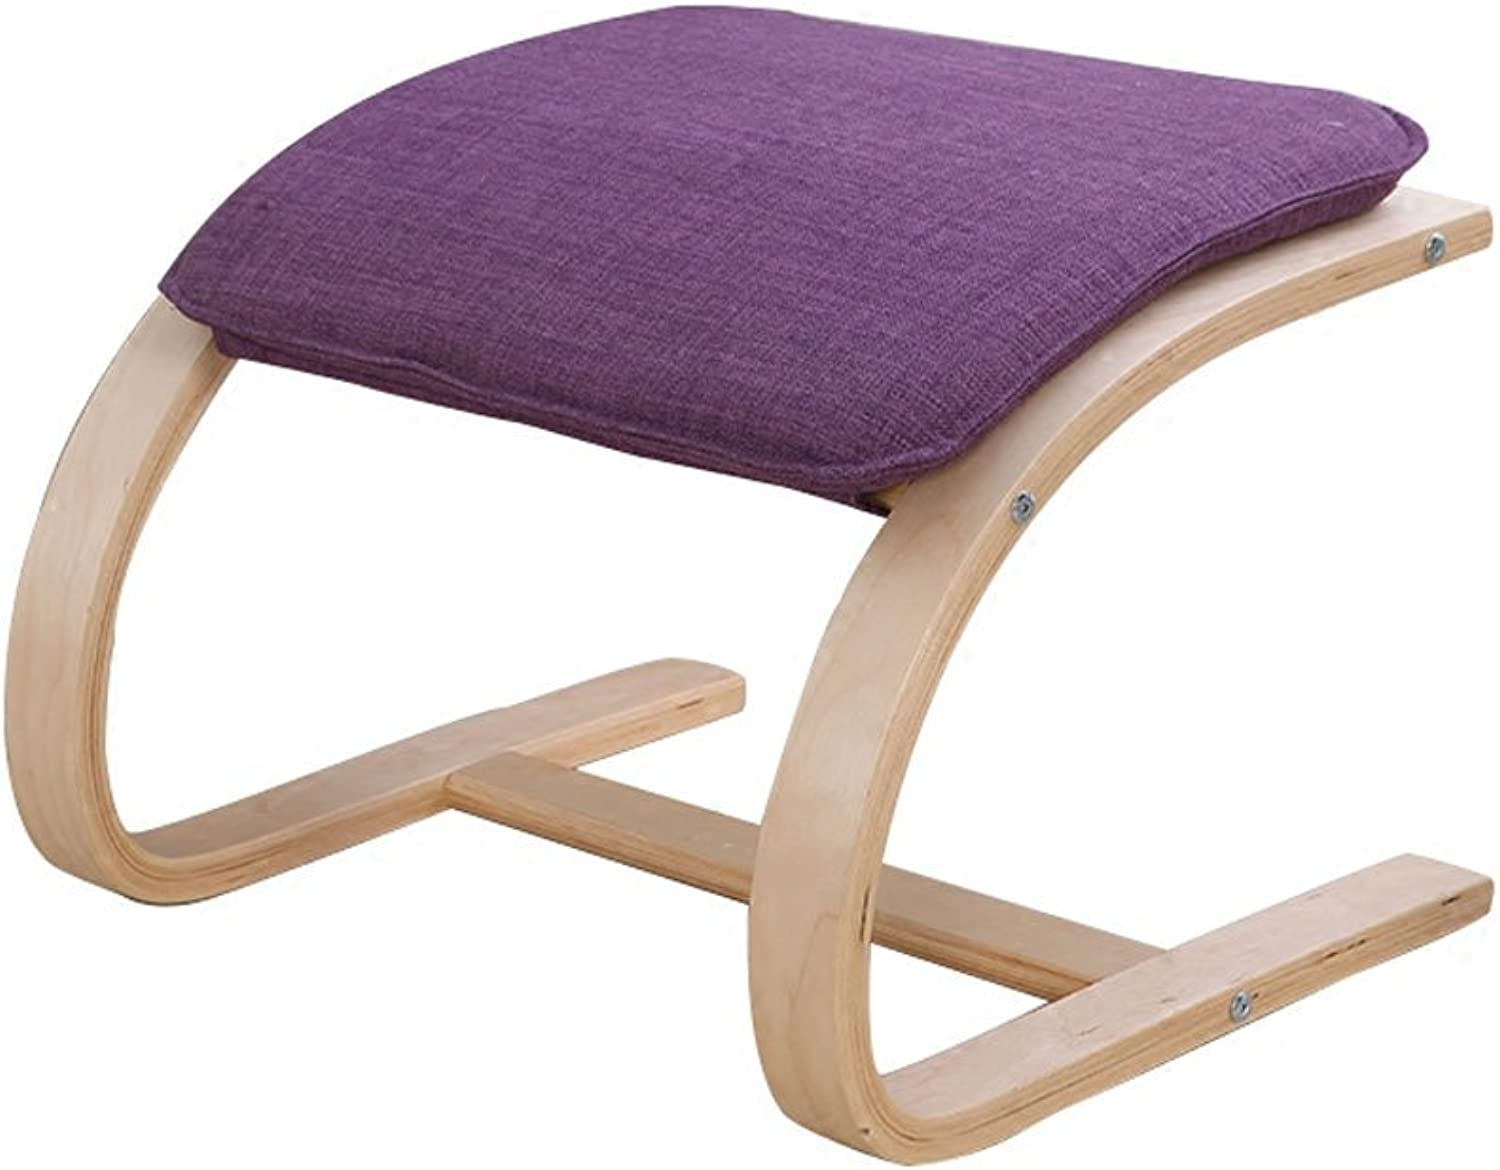 Sofa Stool Foot Step Stool Simple Stool Bentwood Stool Curved Leg Low Stool Cloth (color   Green)